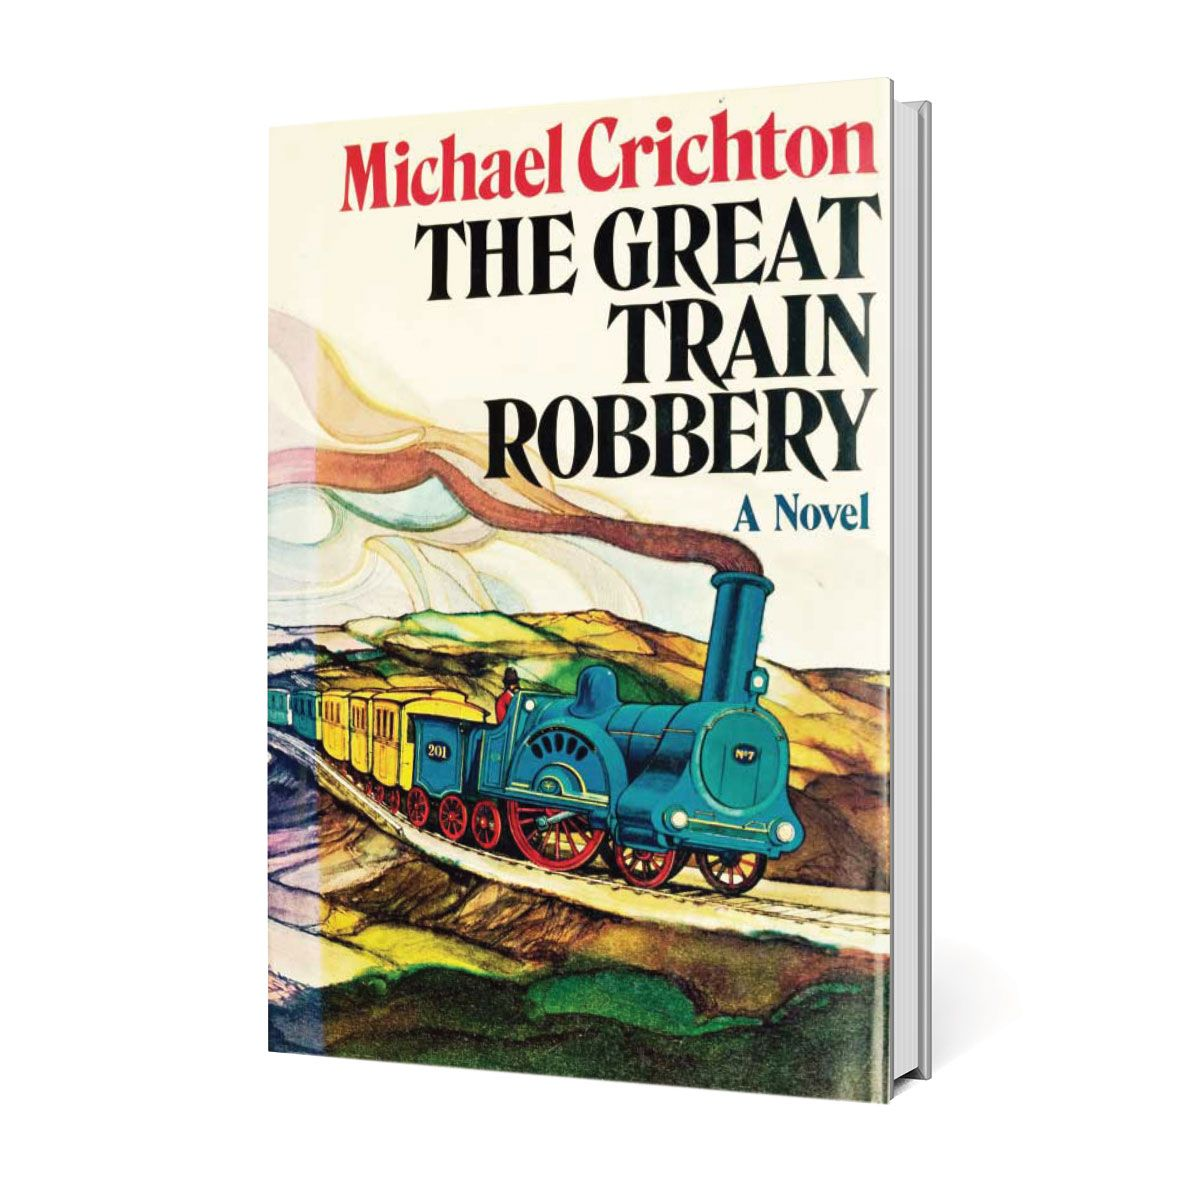 analysing the setting of the great train robbery by michael crighton In 1975, crichton ventured into the nineteenth century with his historical novel the great train robbery, which would become a bestseller the novel is a recreation of the great gold robbery of 1855 , a massive gold heist, which takes place on a train traveling through victorian era england.